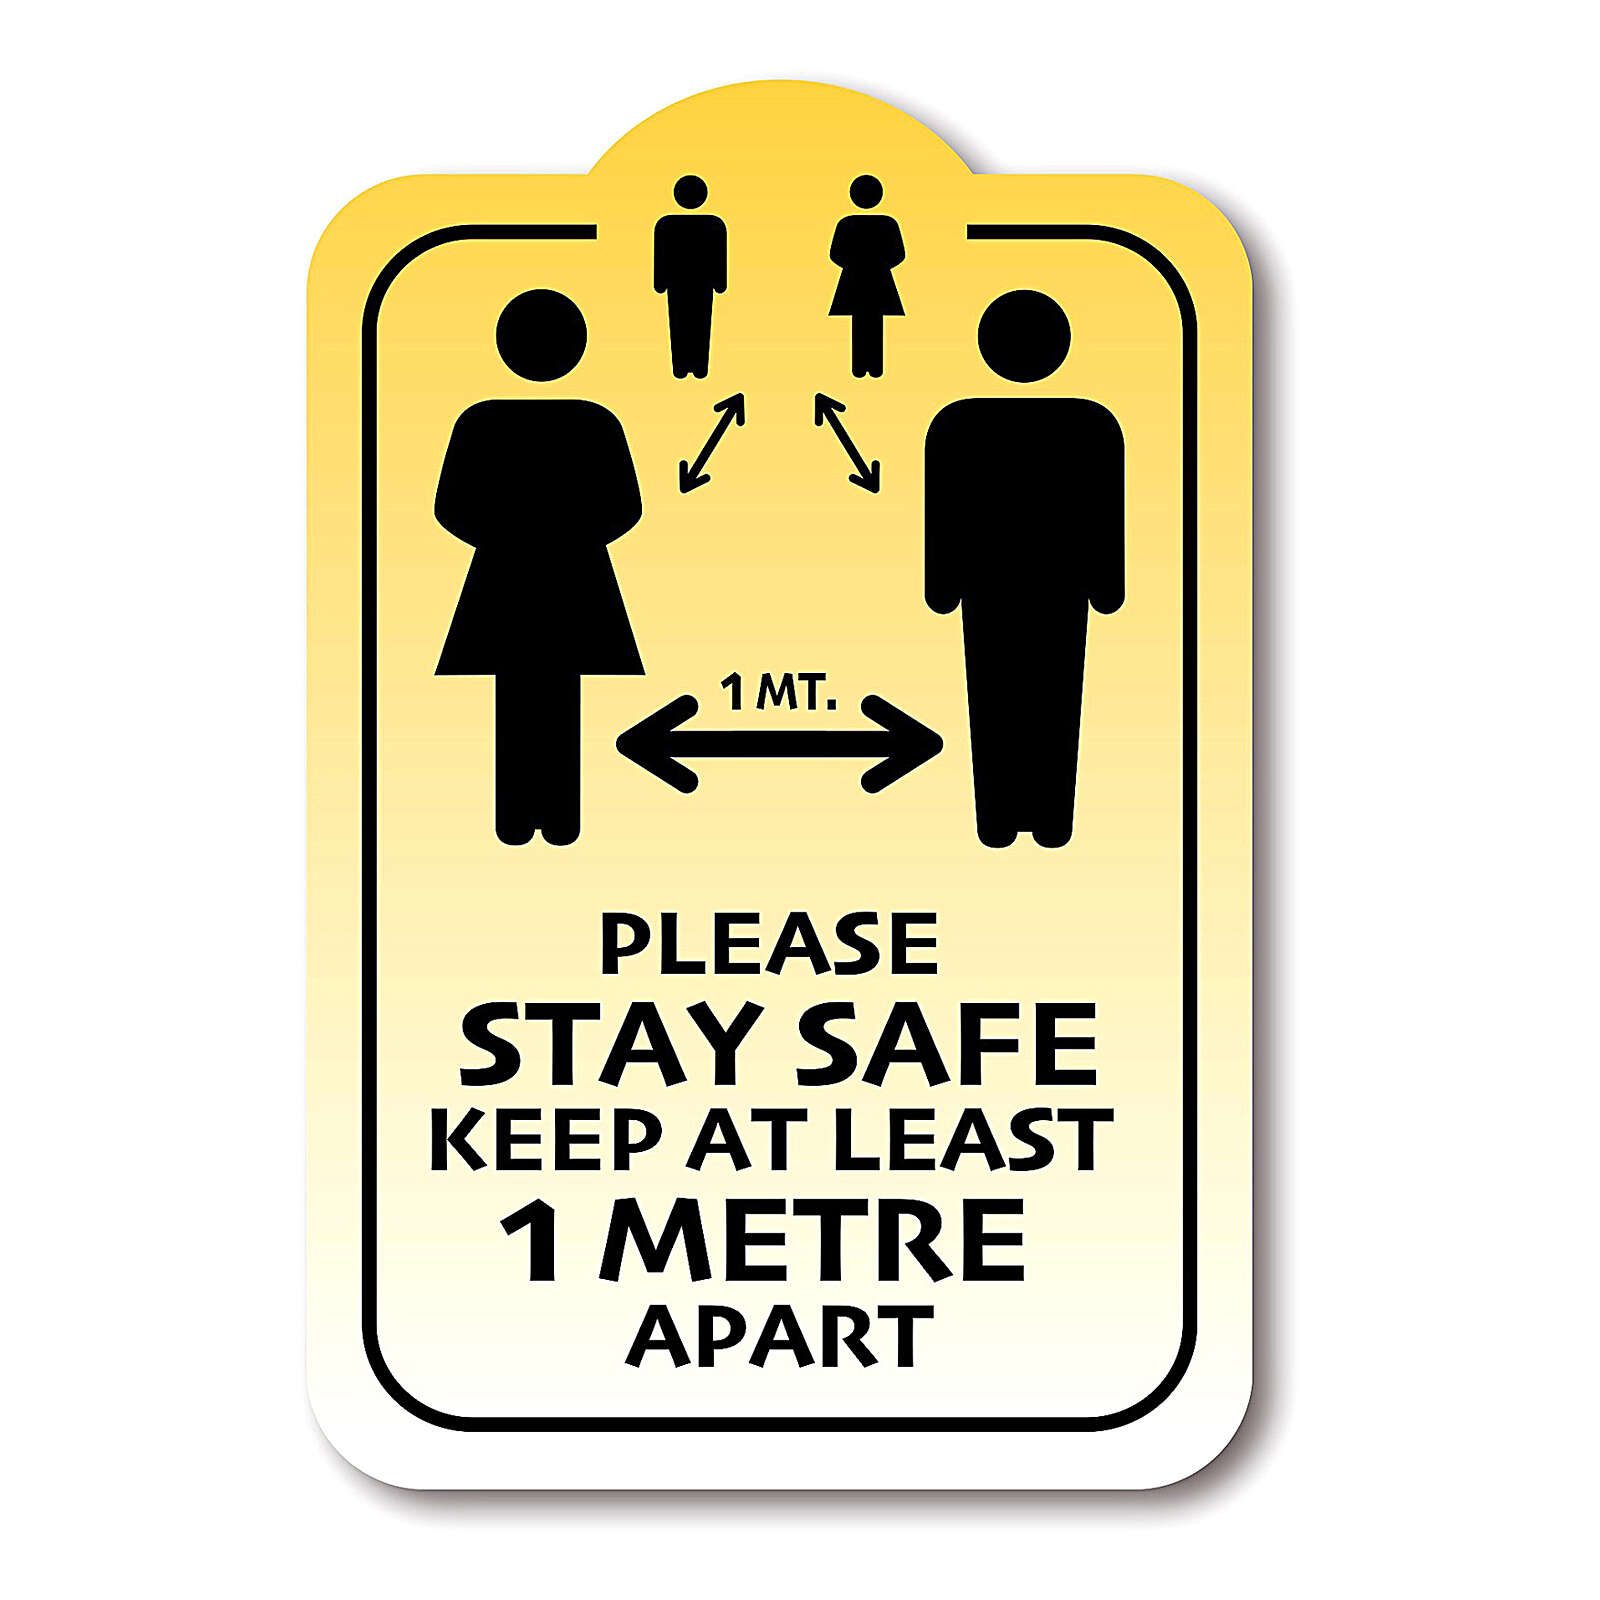 Removable stickers 4 PIECES - PLEASE STAY SAFE KEEP 1 METER APART 3